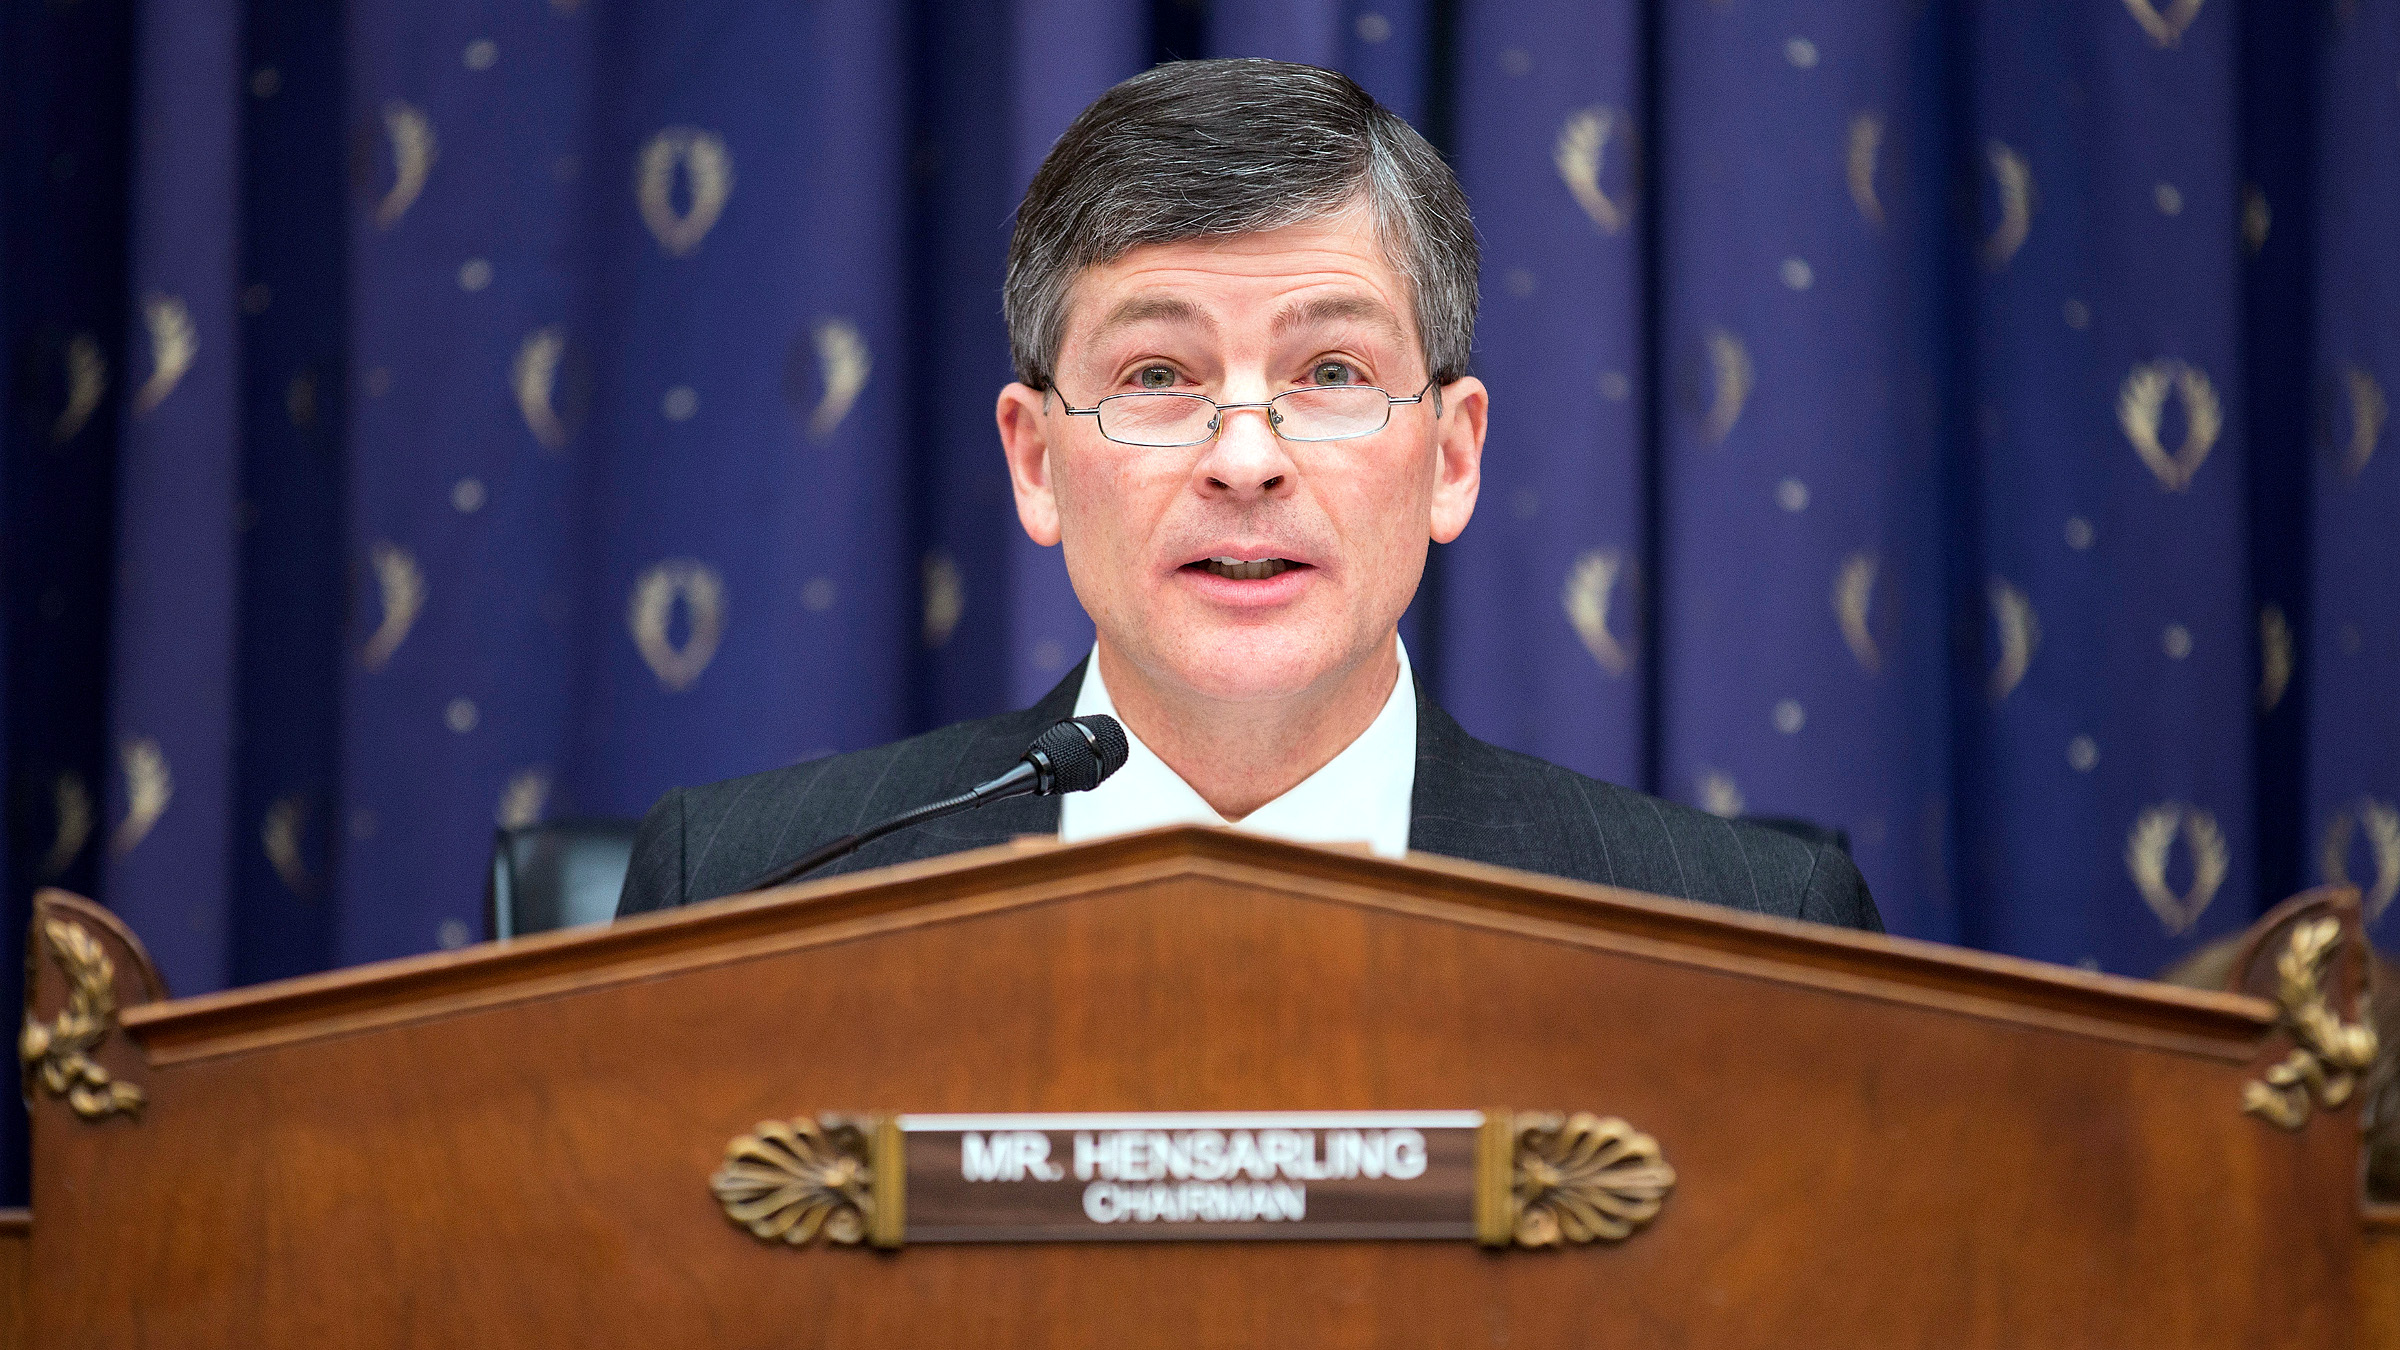 Chairman of the House Financial Services Committee, Jeb Hensarling (R-TX) questions financial regulators about the effects of the Volcker Rule on employment in Washington on February 5, 2014.